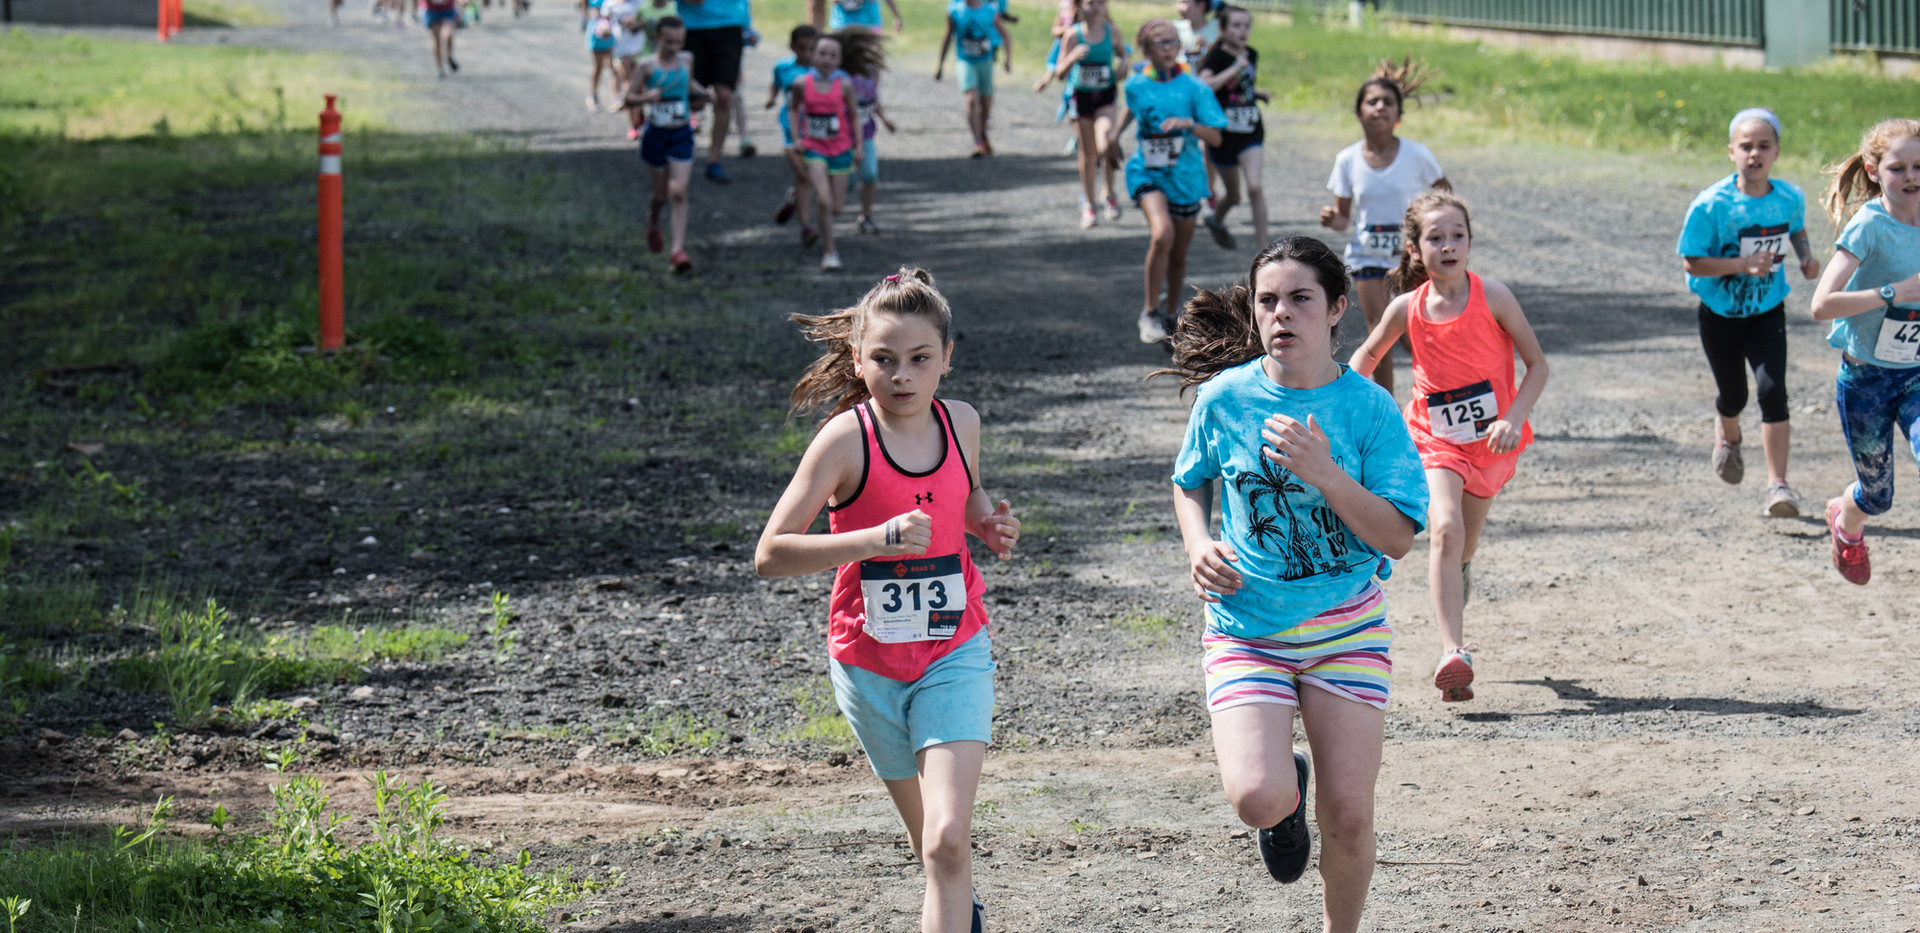 Go far 2018 1 Mile and 2 mile-4012.jpg